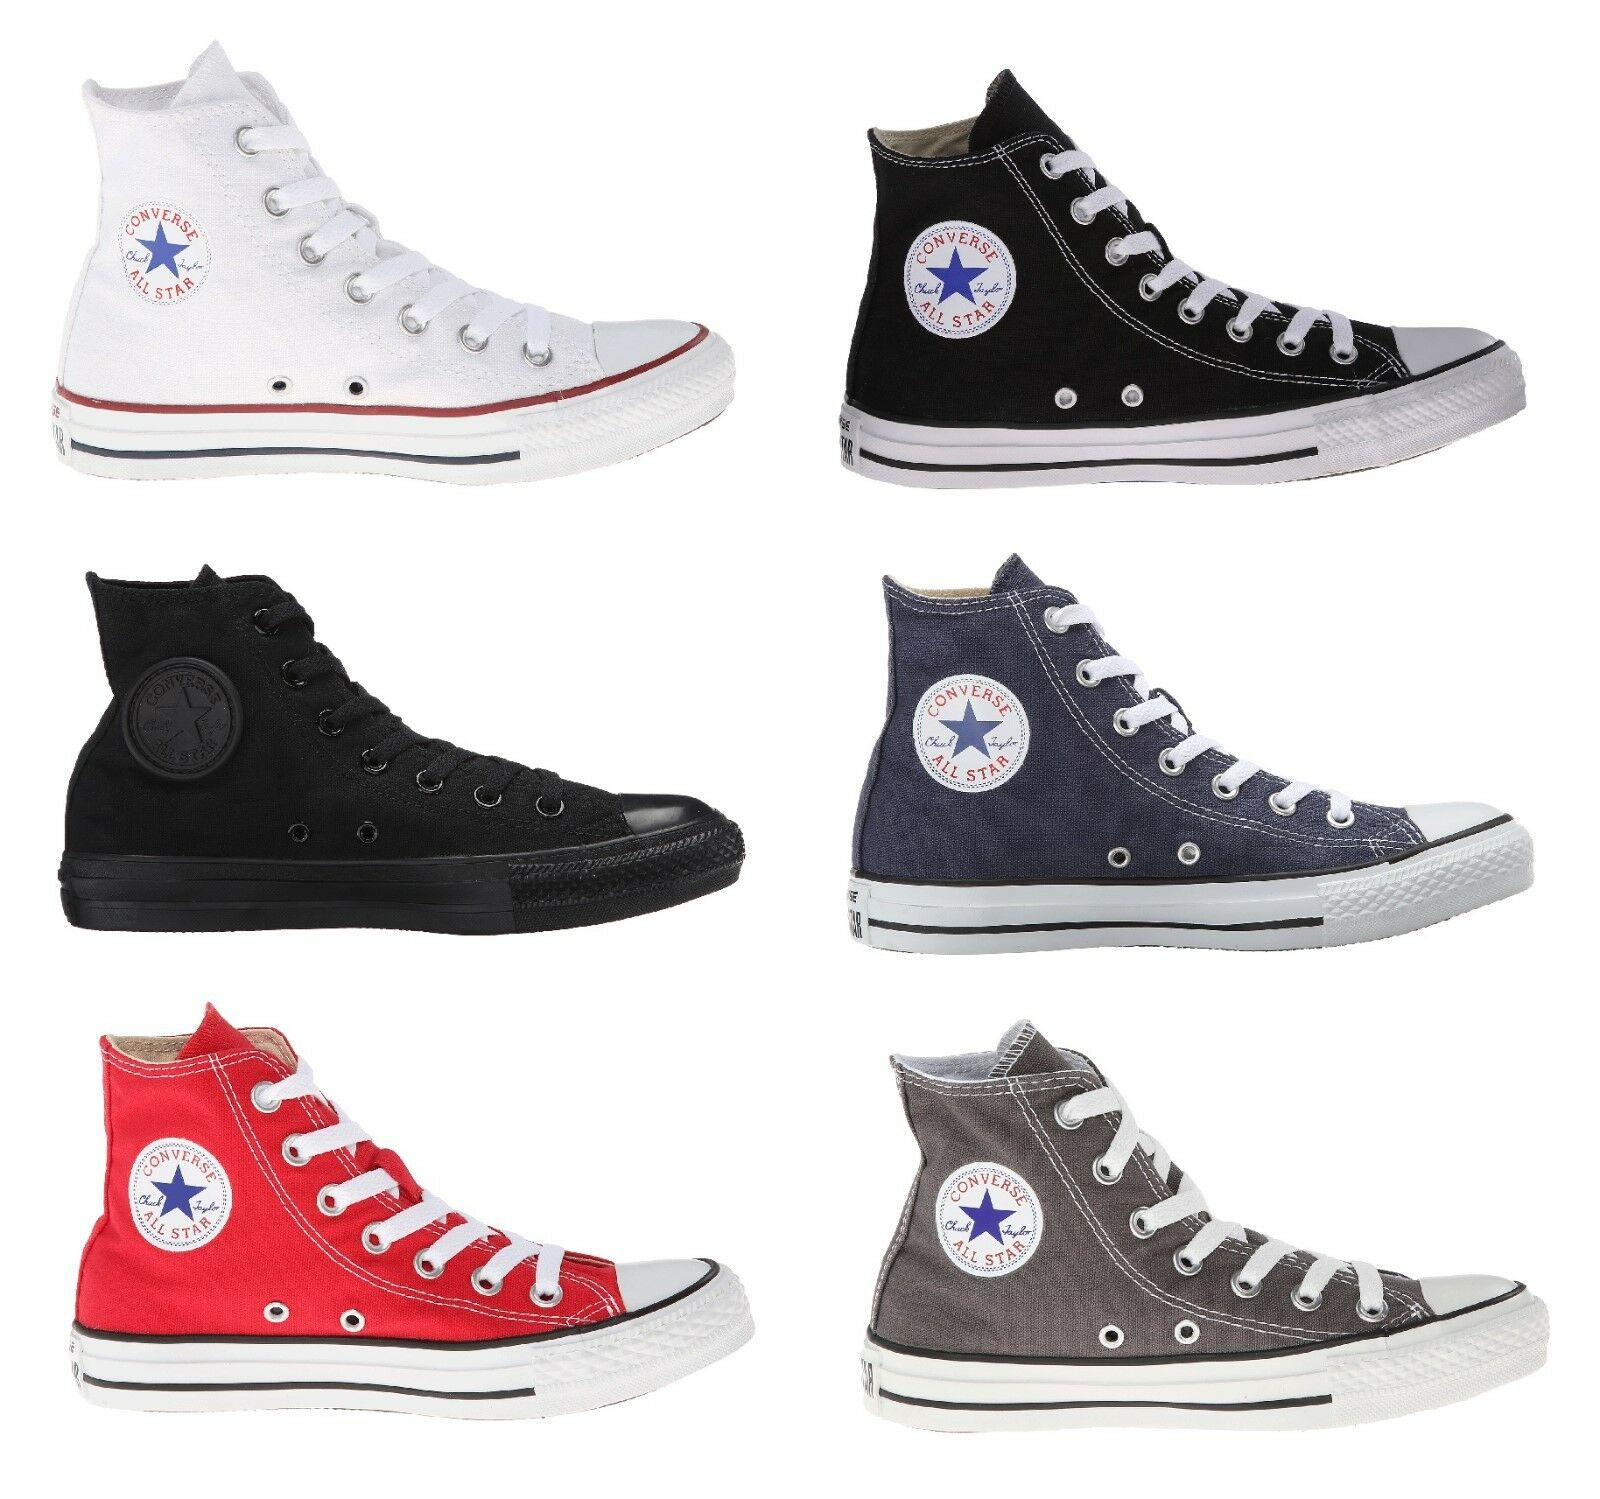 Converse All Star Chuck Taylor Shoes Canvas Hi Top Men Sneakers